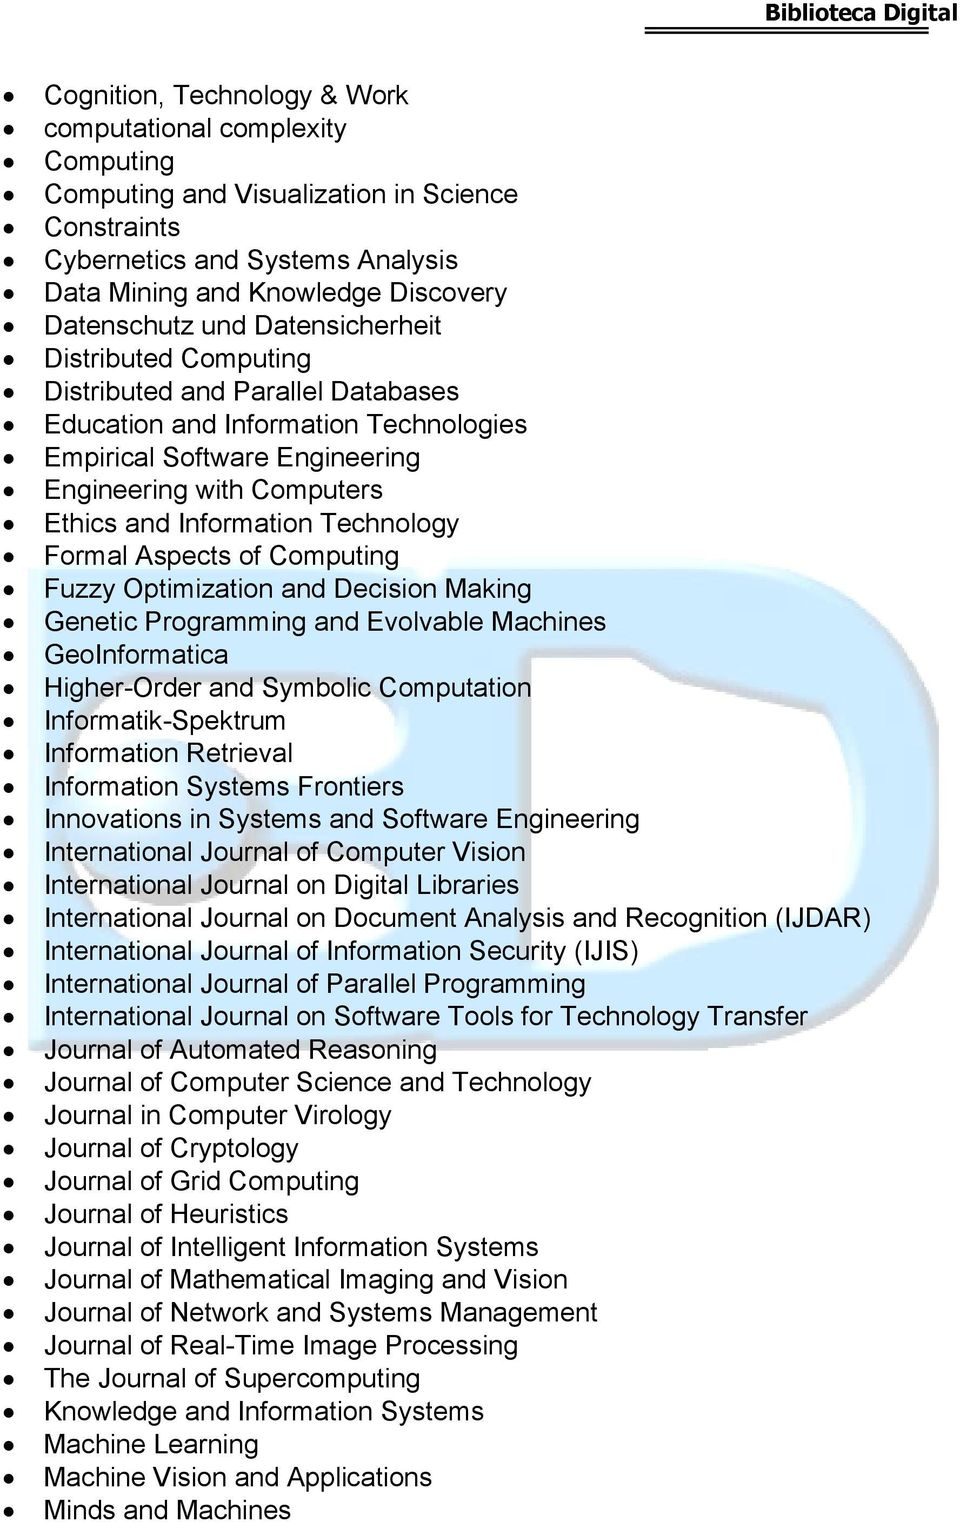 Technology Formal Aspects of Computing Fuzzy Optimization and Decision Making Genetic Programming and Evolvable Machines GeoInformatica Higher-Order and Symbolic Computation Informatik-Spektrum